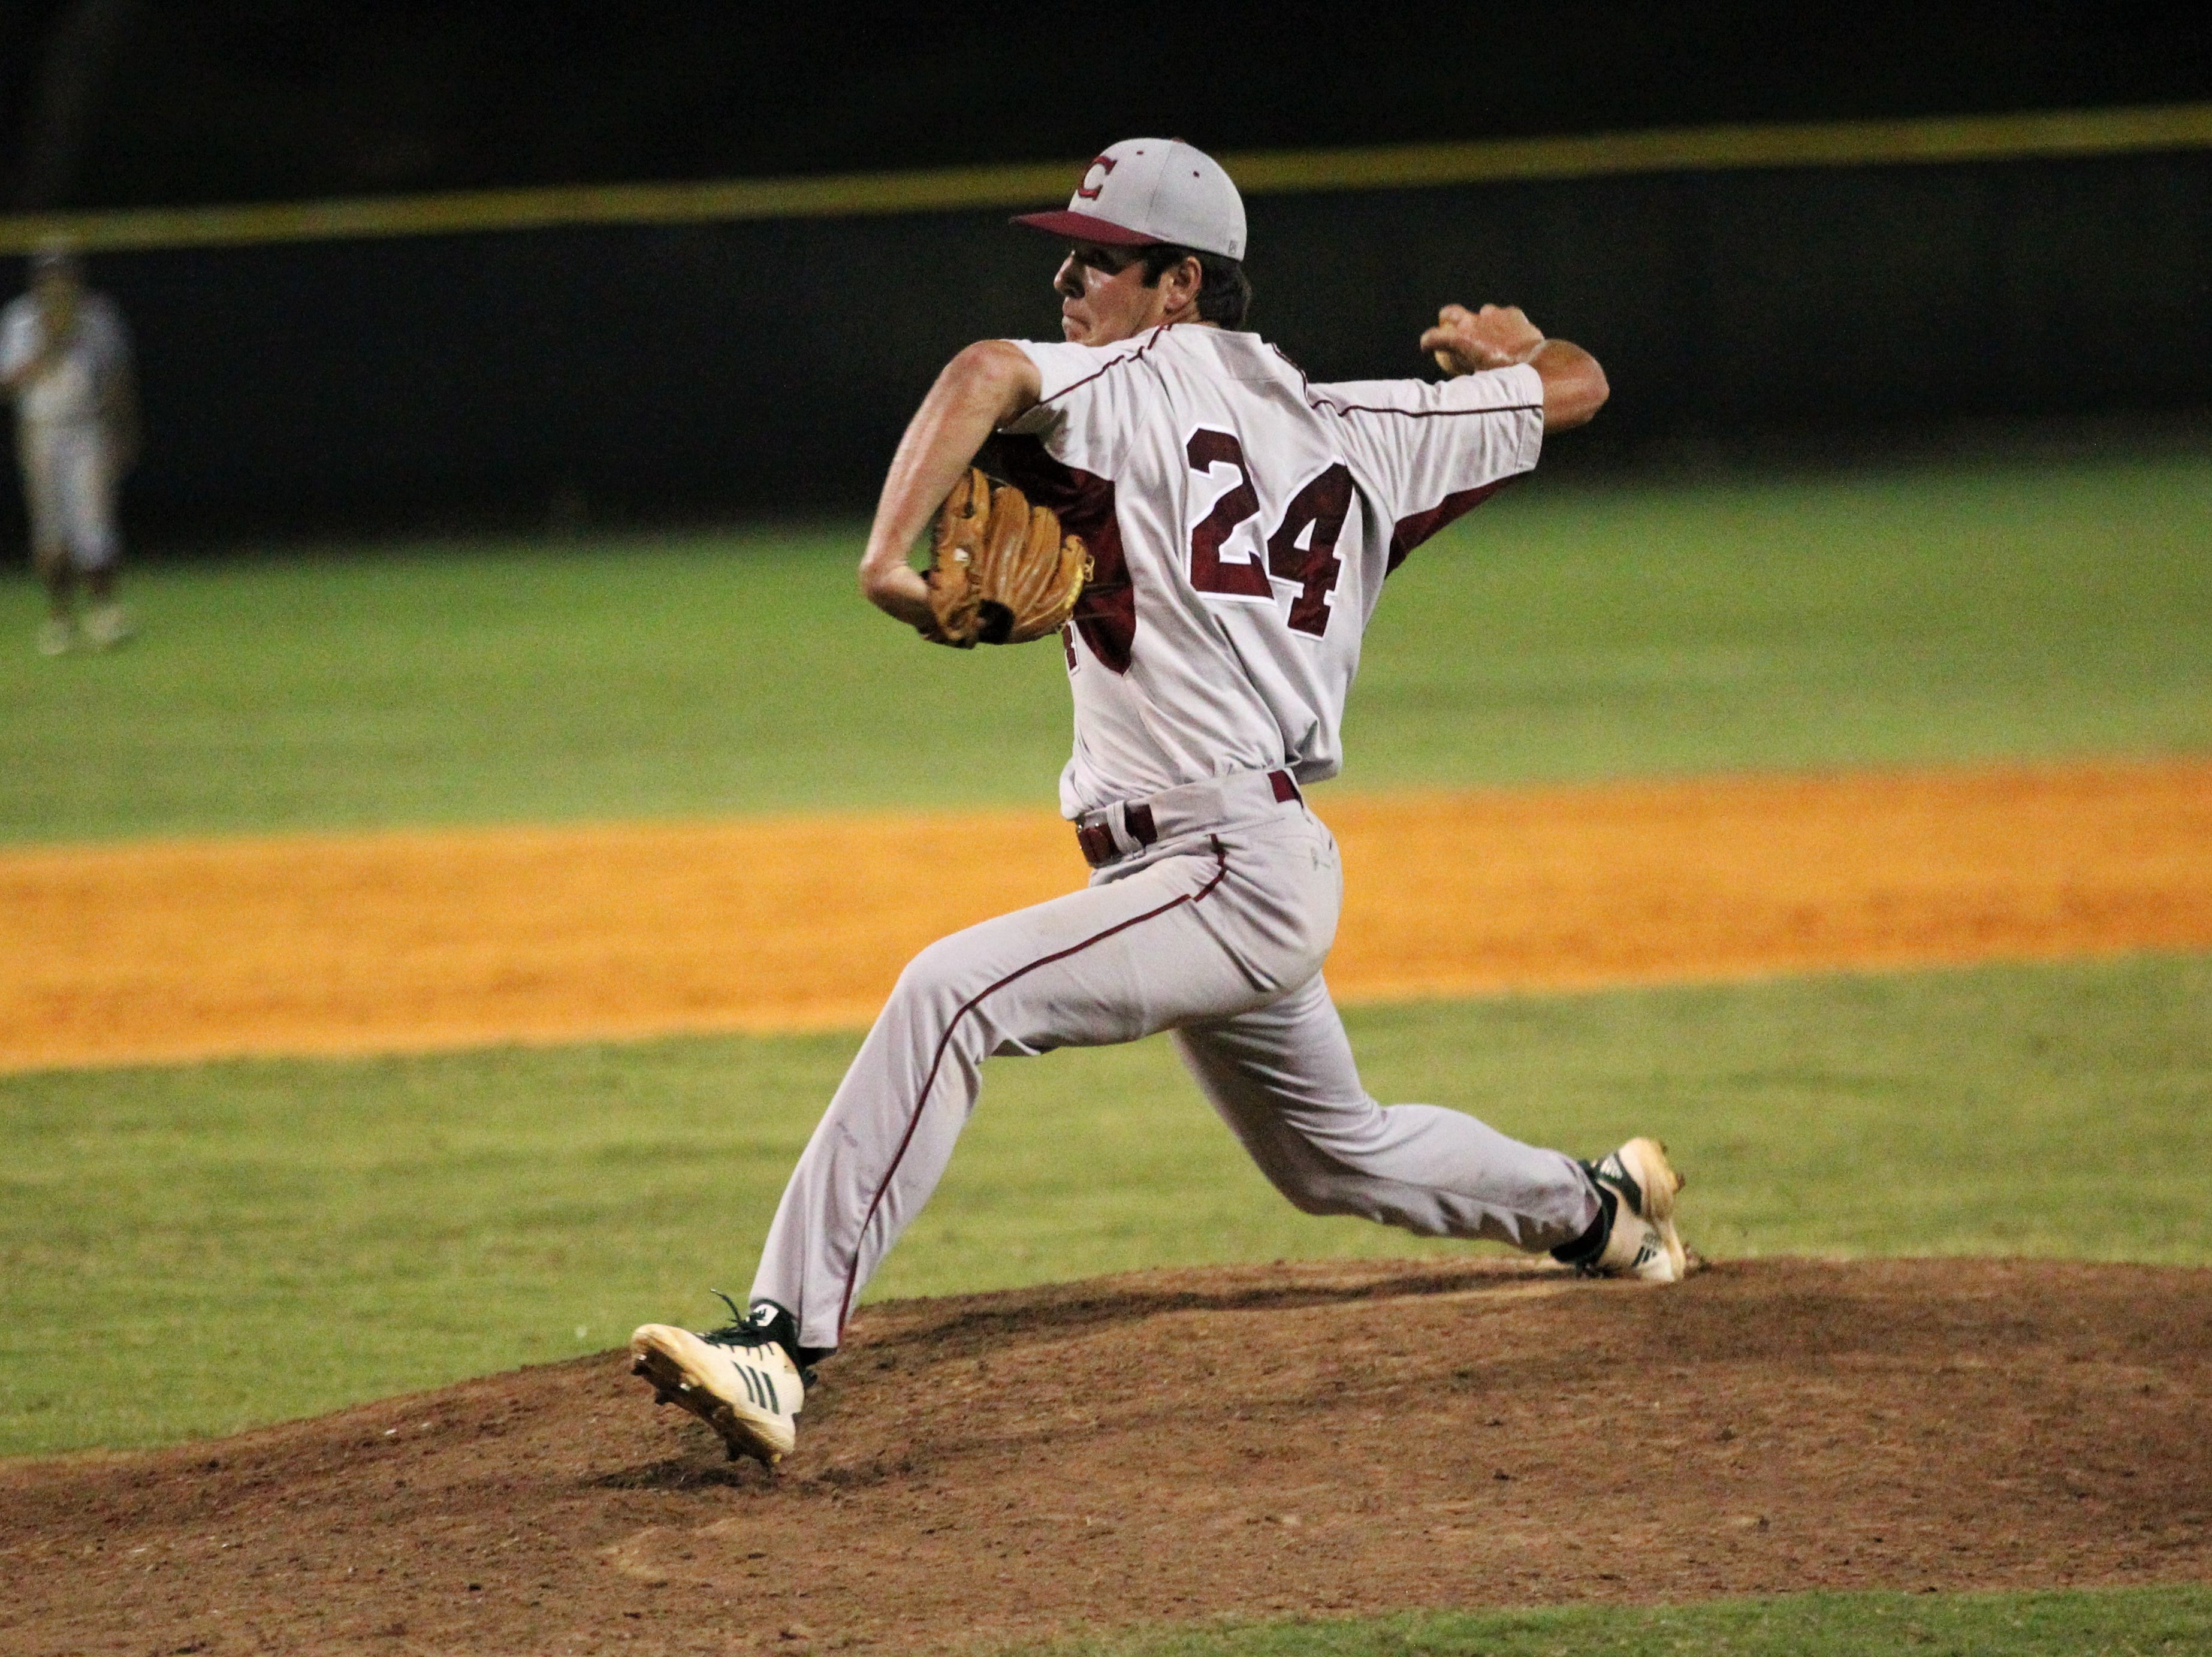 Chiles junior Bryson Cooksey pitches in relief as Lincoln baseball beat Chiles 5-4  in 10 innings during a District 2-8A championship game on Thursday, May 9, 2019.